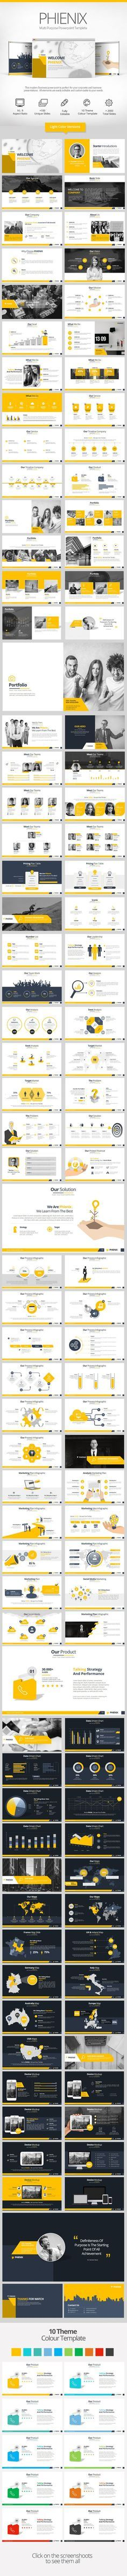 166 Best Style Powerpoint Images On Pinterest Powerpoint Themes